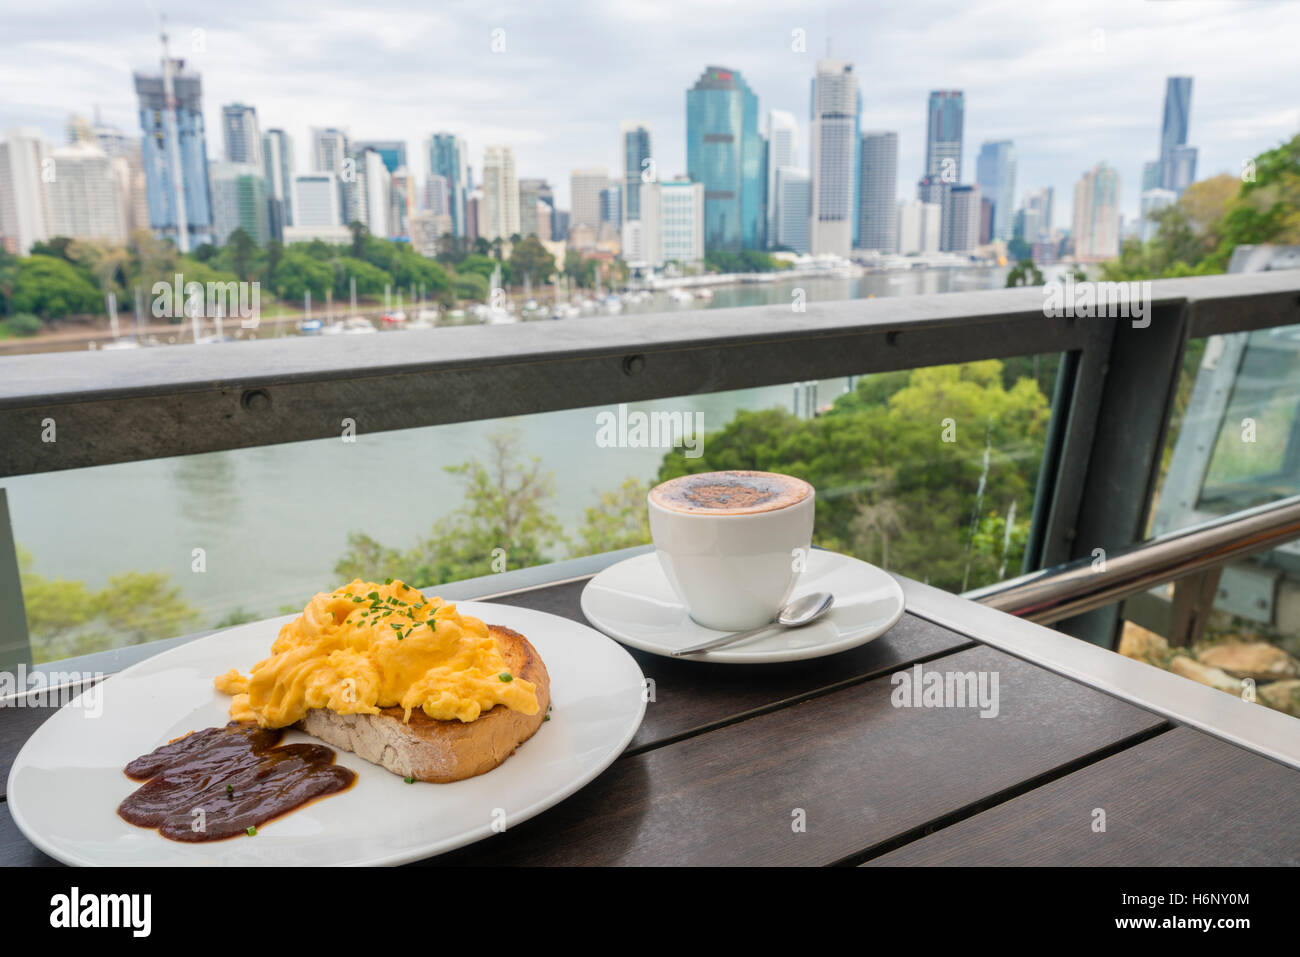 Breakfast in a cafe with city background - Stock Image